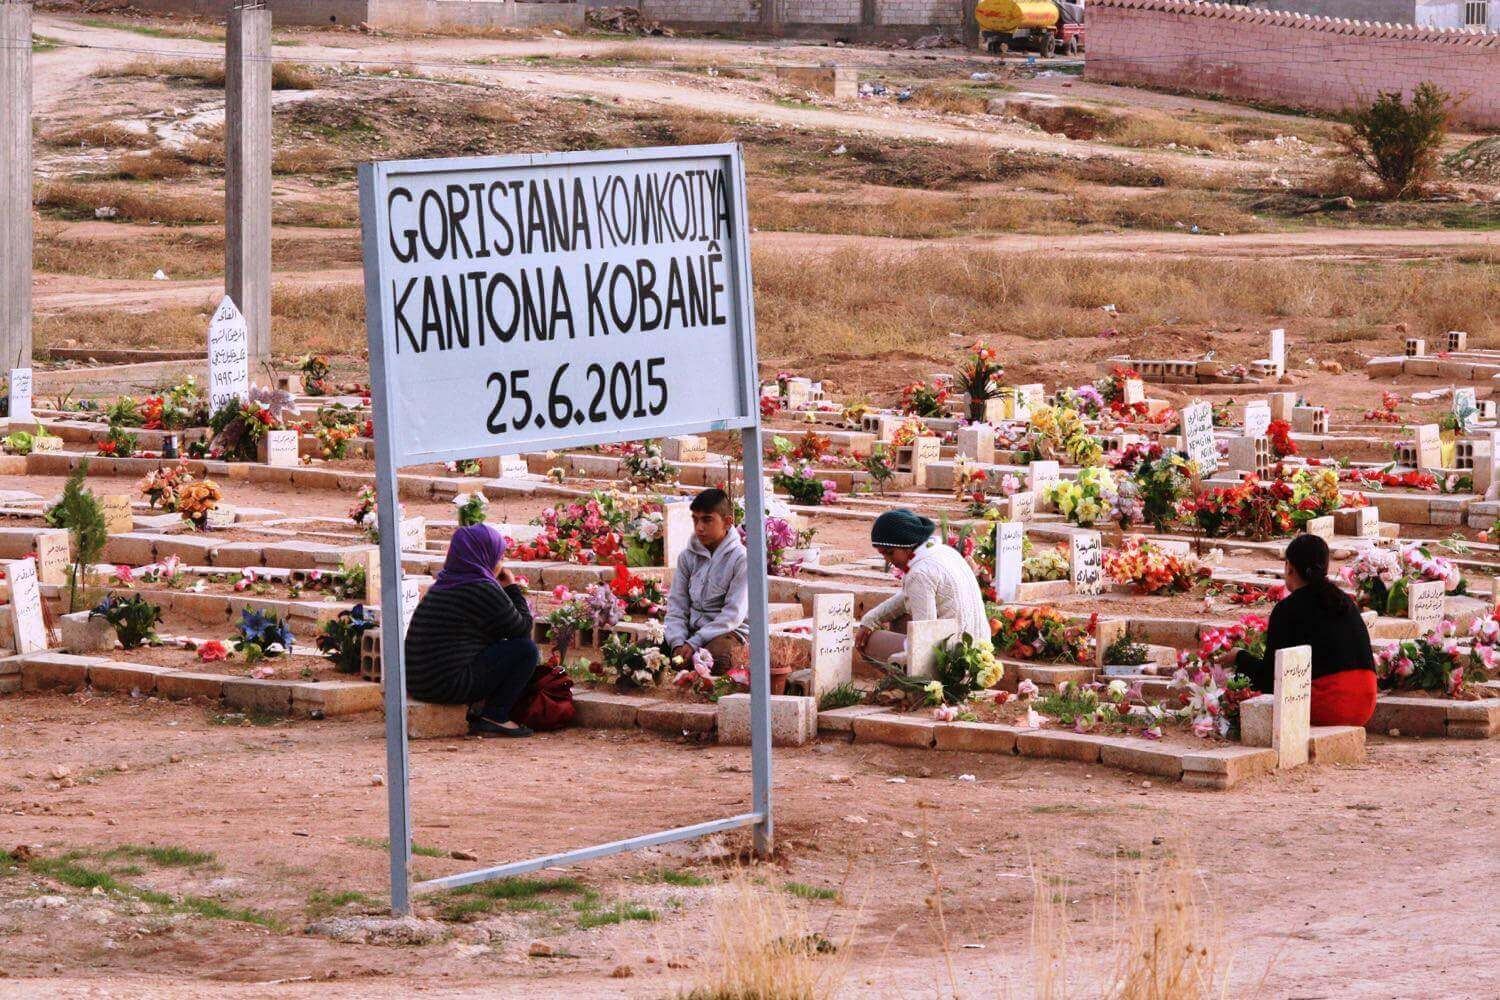 Cemetry of the victims of the massacre from June 2015 Kobanê, November 5, 2015